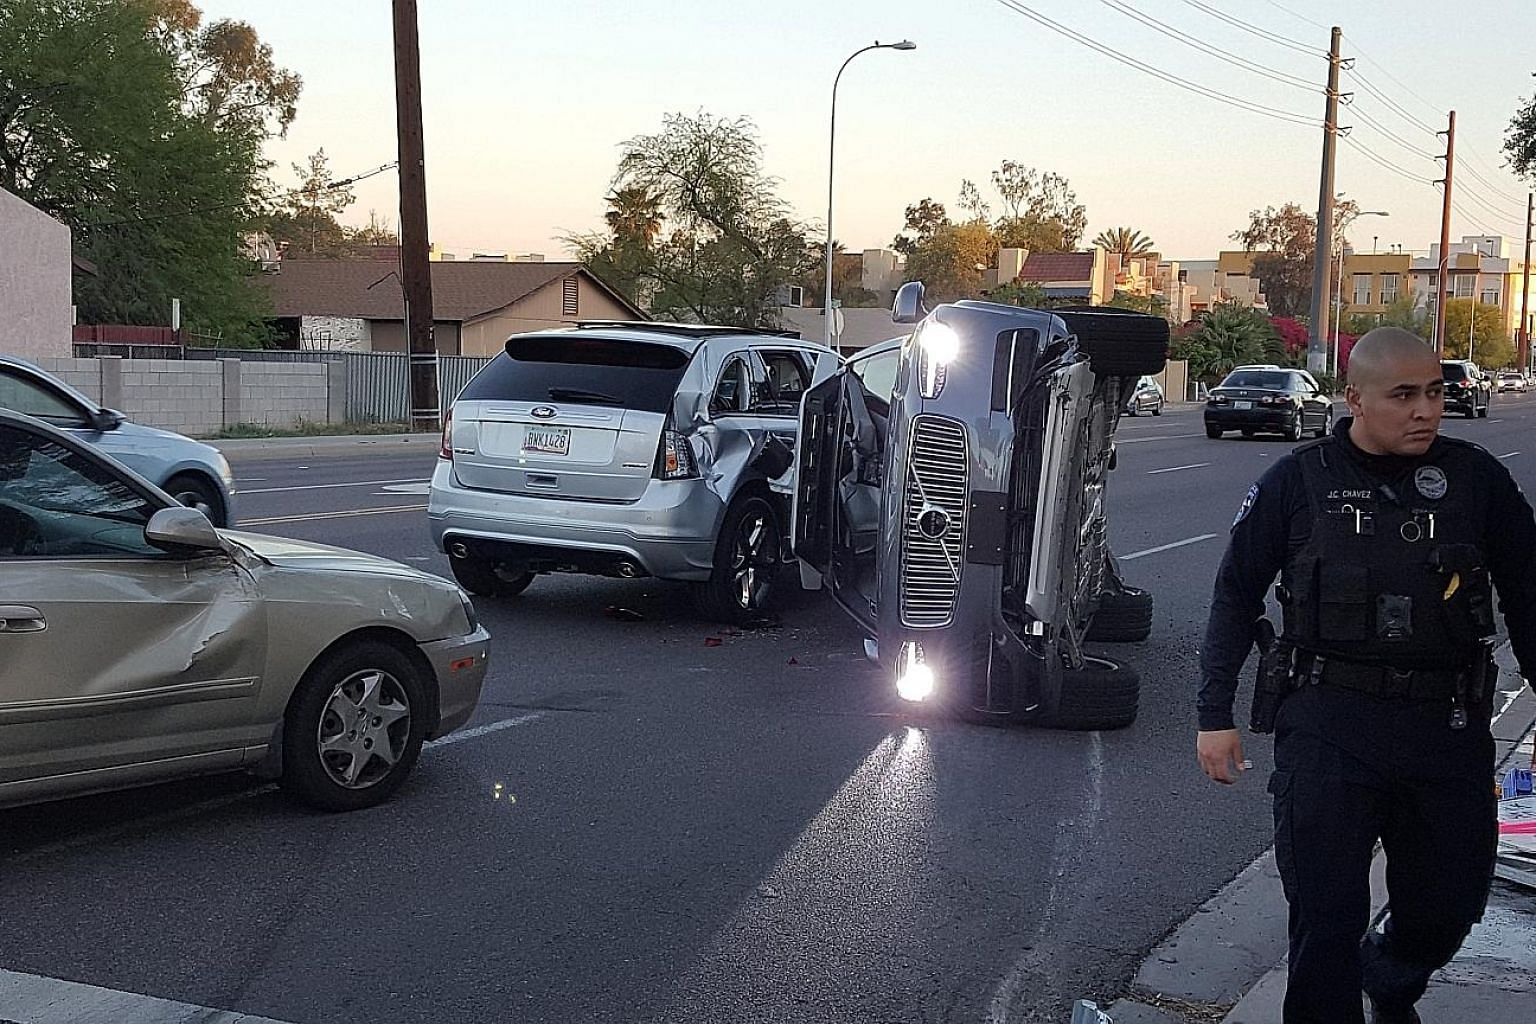 A self-driven Volvo SUV owned and operated by Uber lying on its side after a collision with another vehicle in Tempe, Arizona, flipped it over.